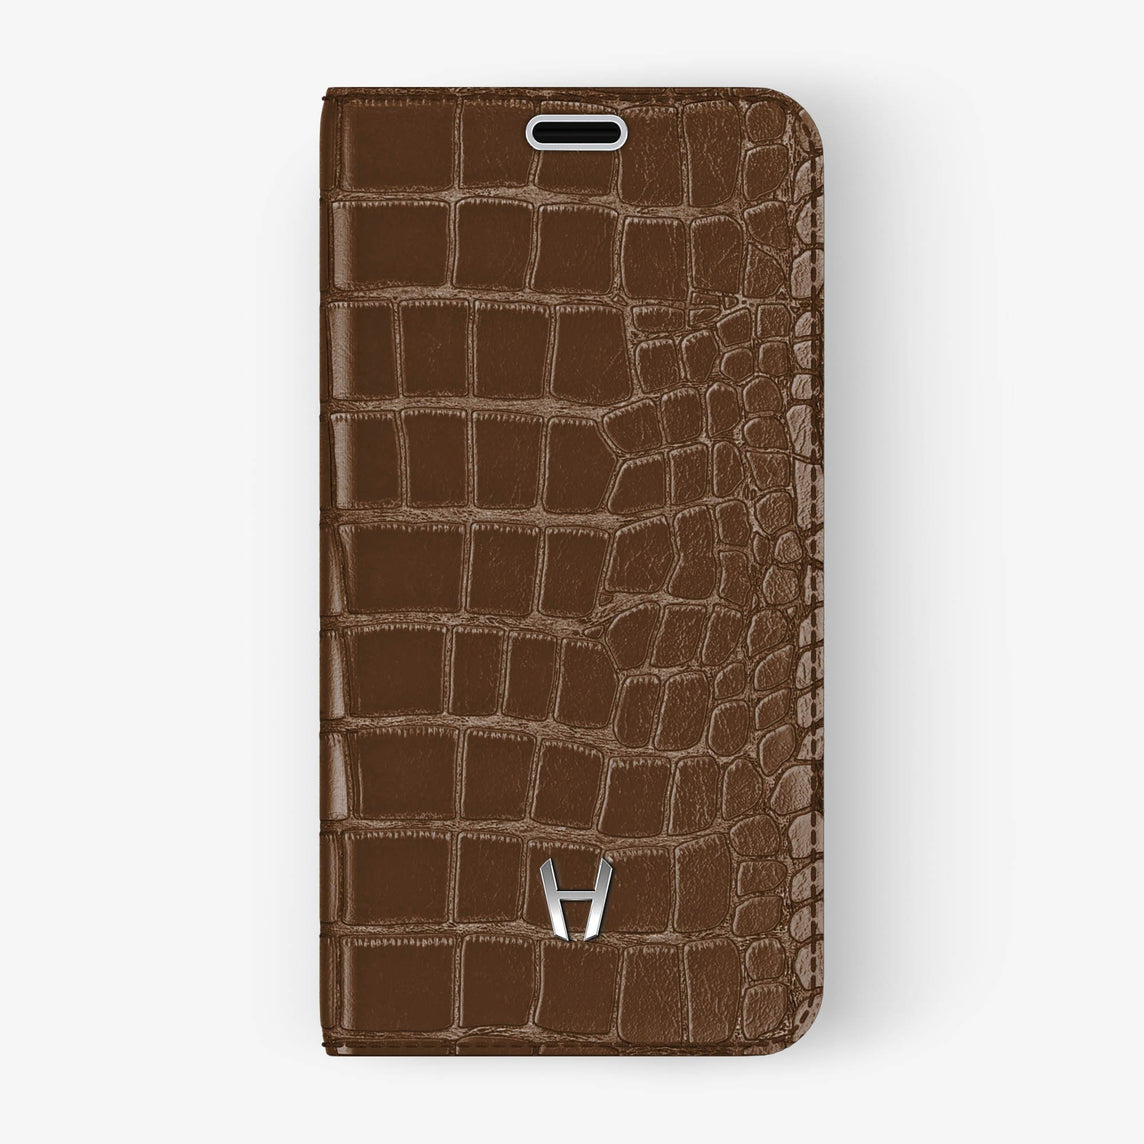 Brown Alligator iPhone Folio Case for iPhone XS Max finishing stainless steel - Hadoro Luxury Cases